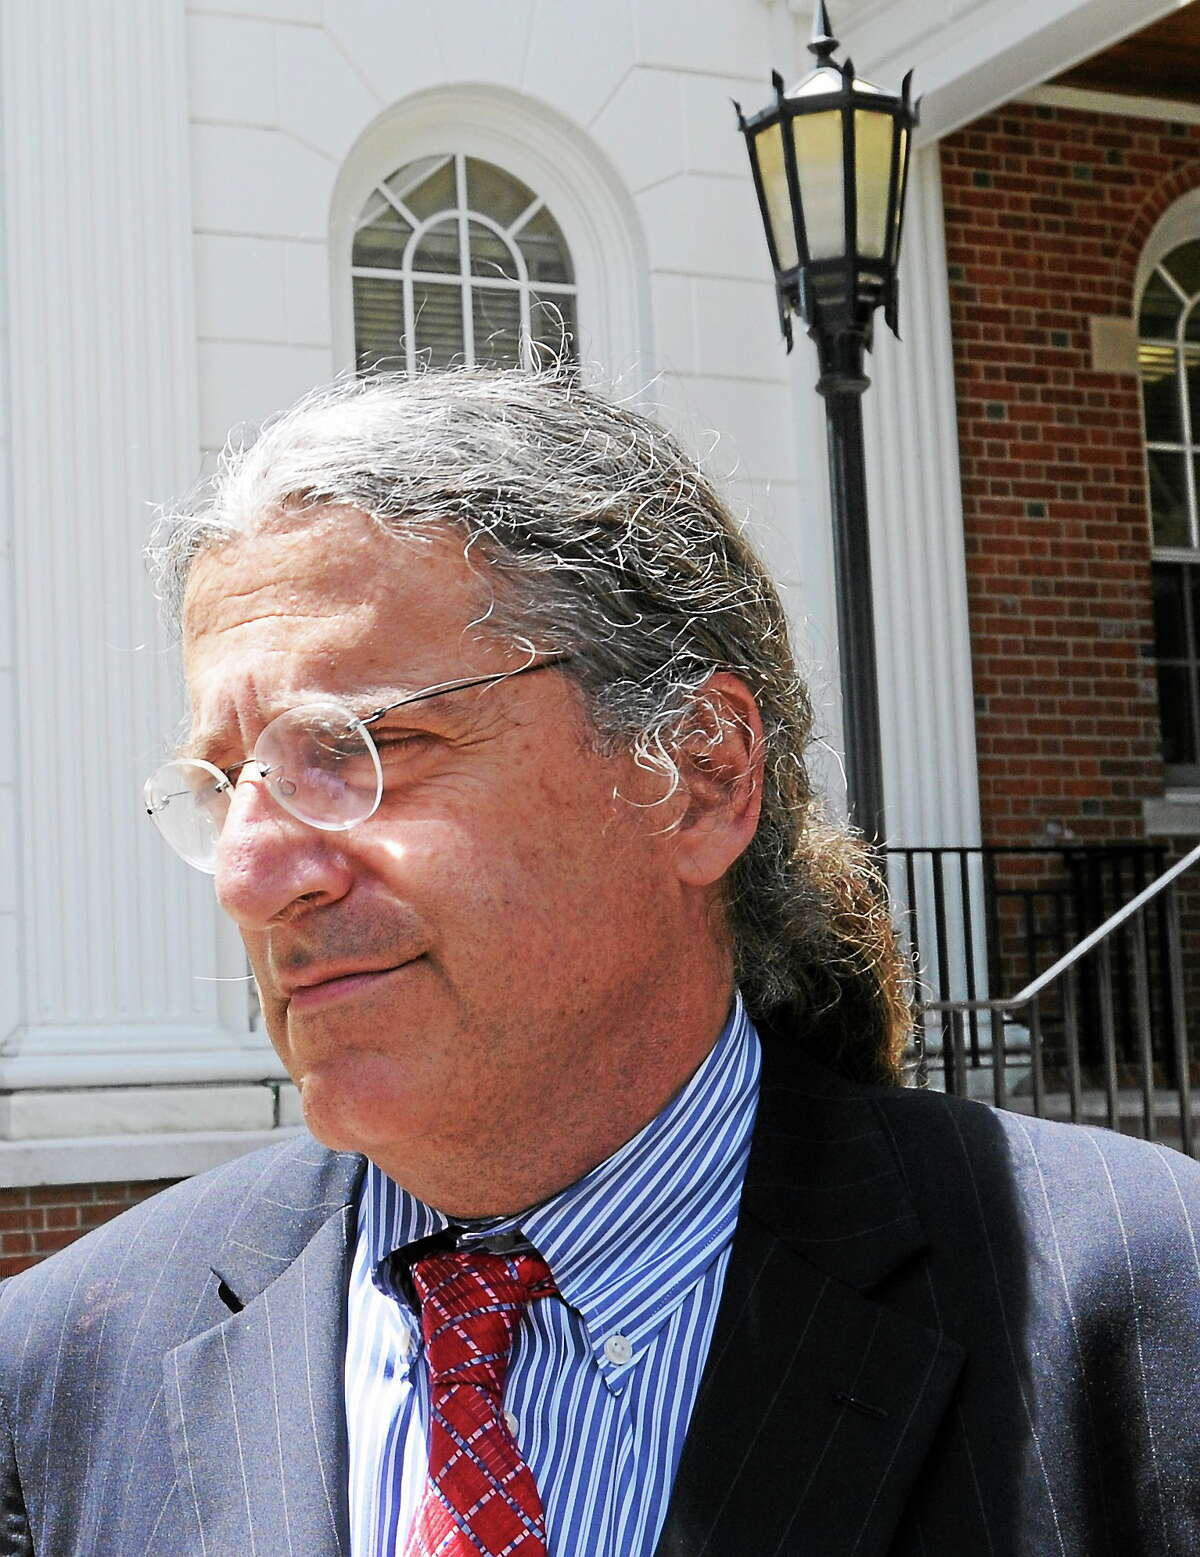 Lawyer Norm Pattis outside Superior Court in Milford after the sentencing of his client Ziba Guy, 46, for conspiracy to commit first-degree assault Wednesday, June 18, 2014.